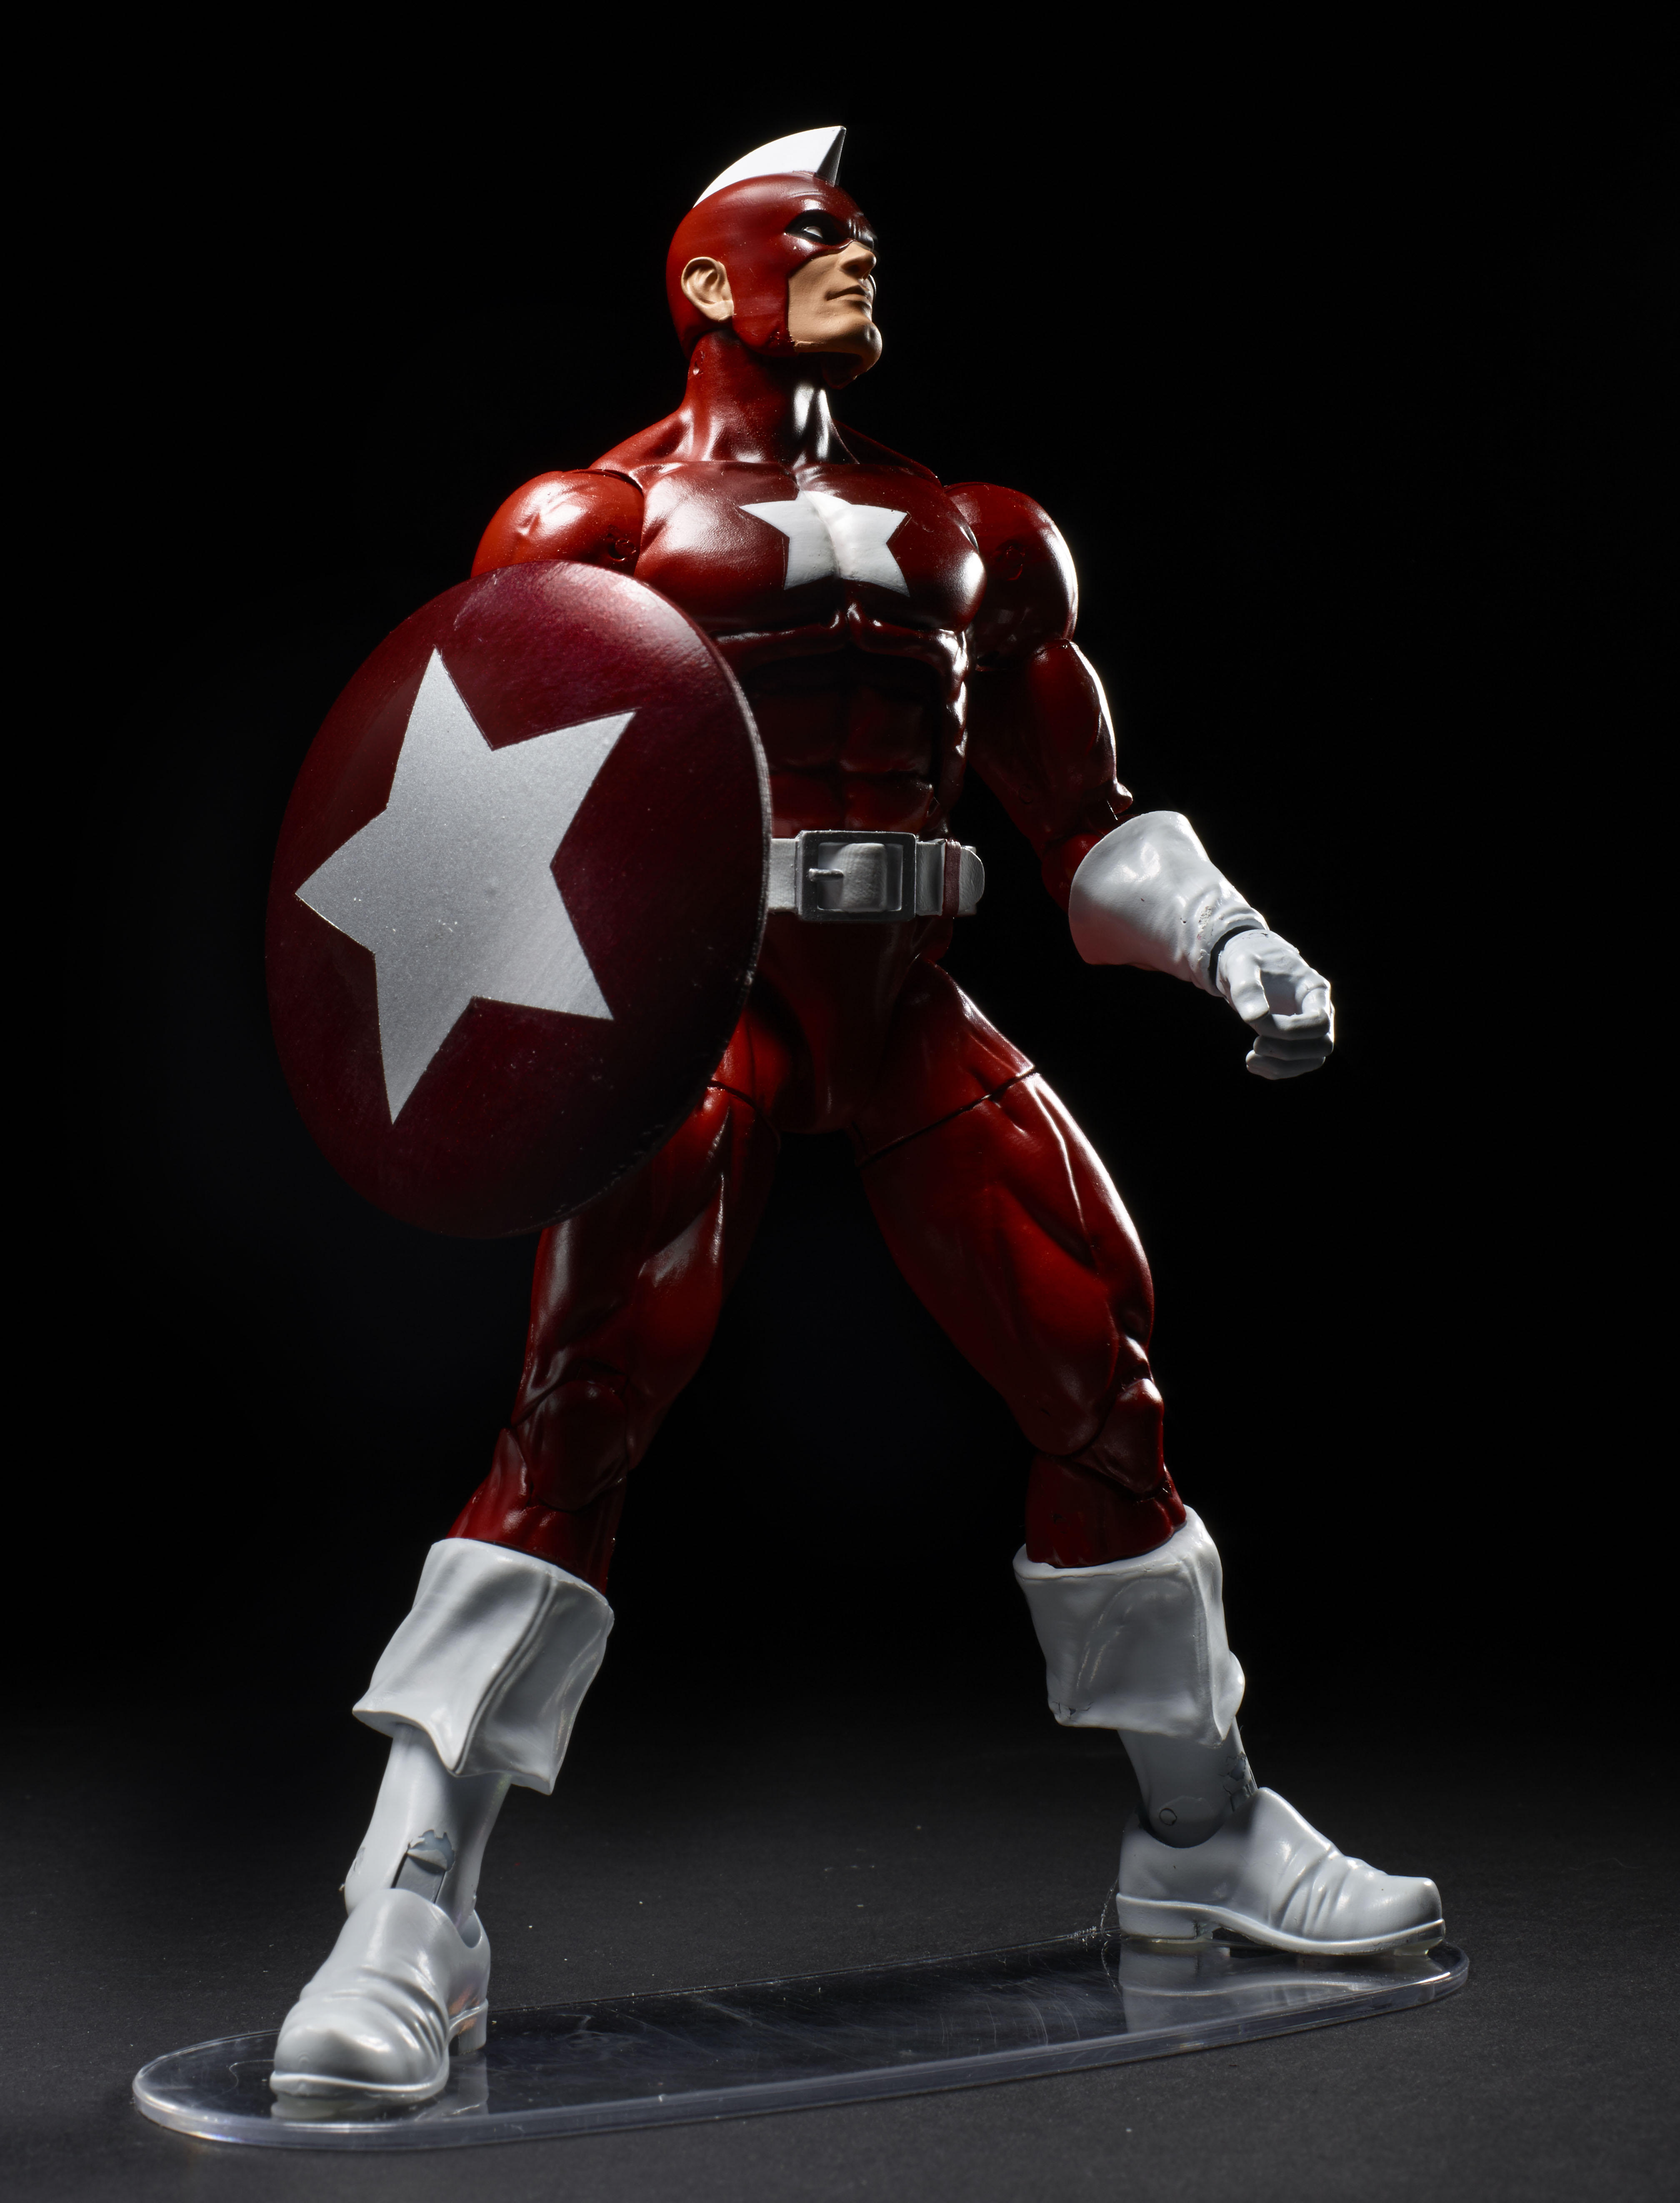 hasbro reveals x men captain america marvel legends lyles movie files. Black Bedroom Furniture Sets. Home Design Ideas